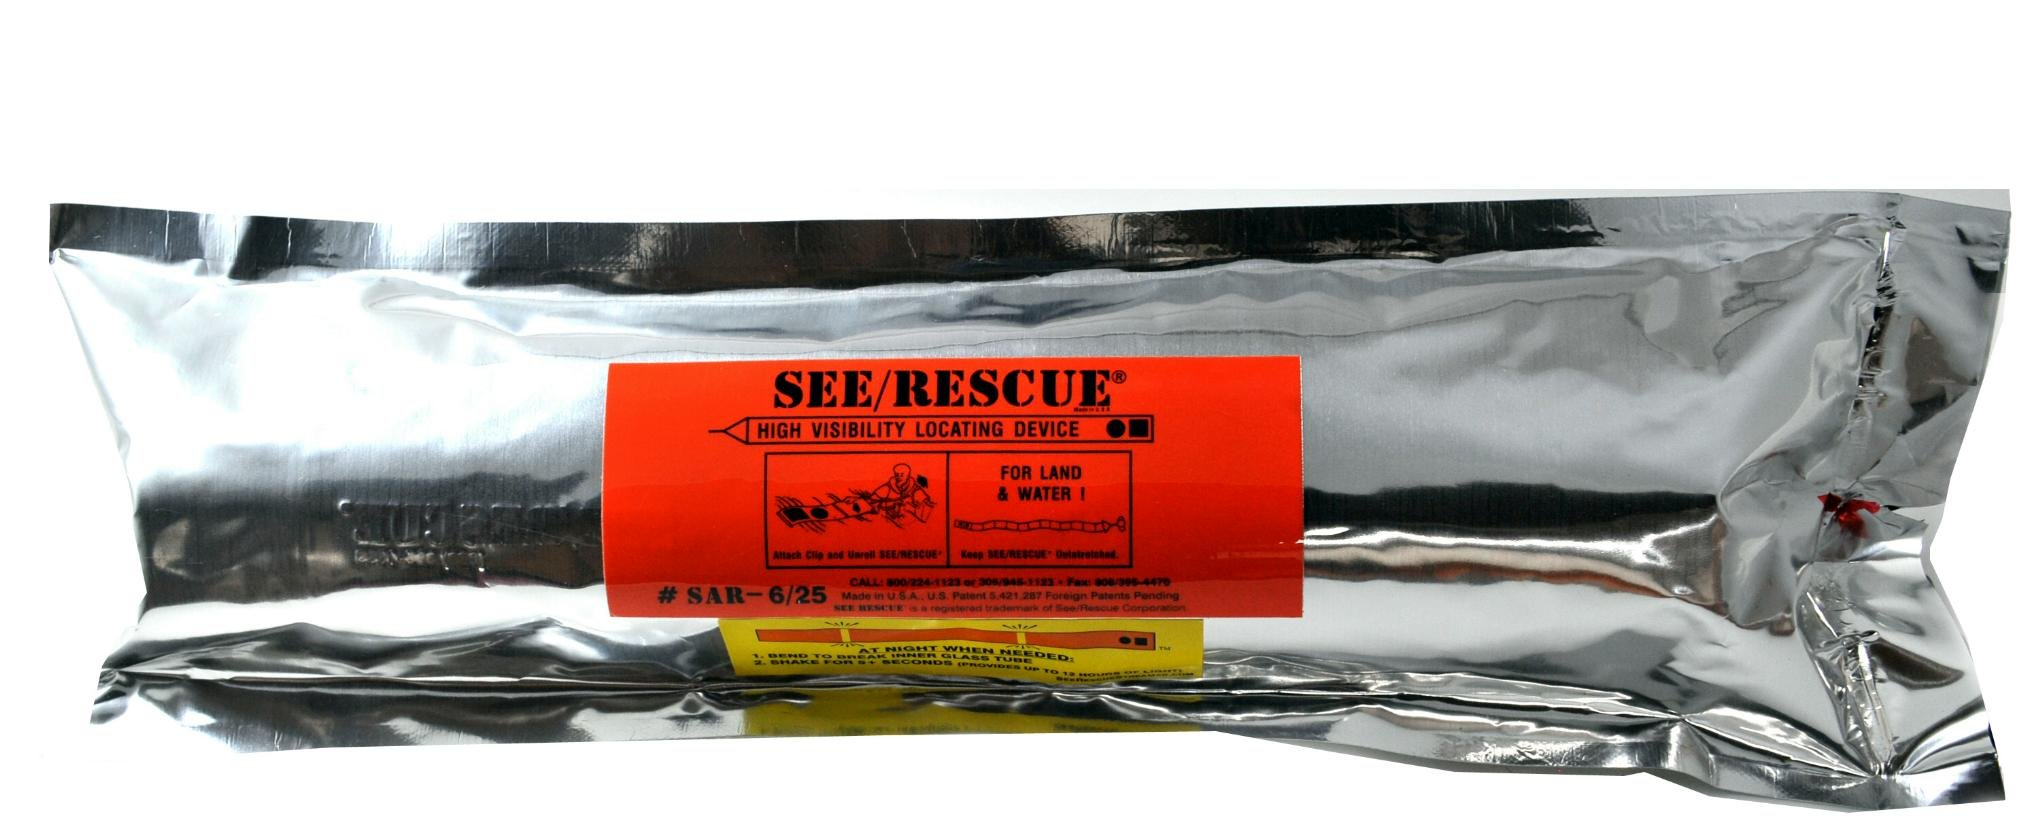 See/Rescue Streamer, Lighted Safety and Rescue Device for Any Terrain - Large